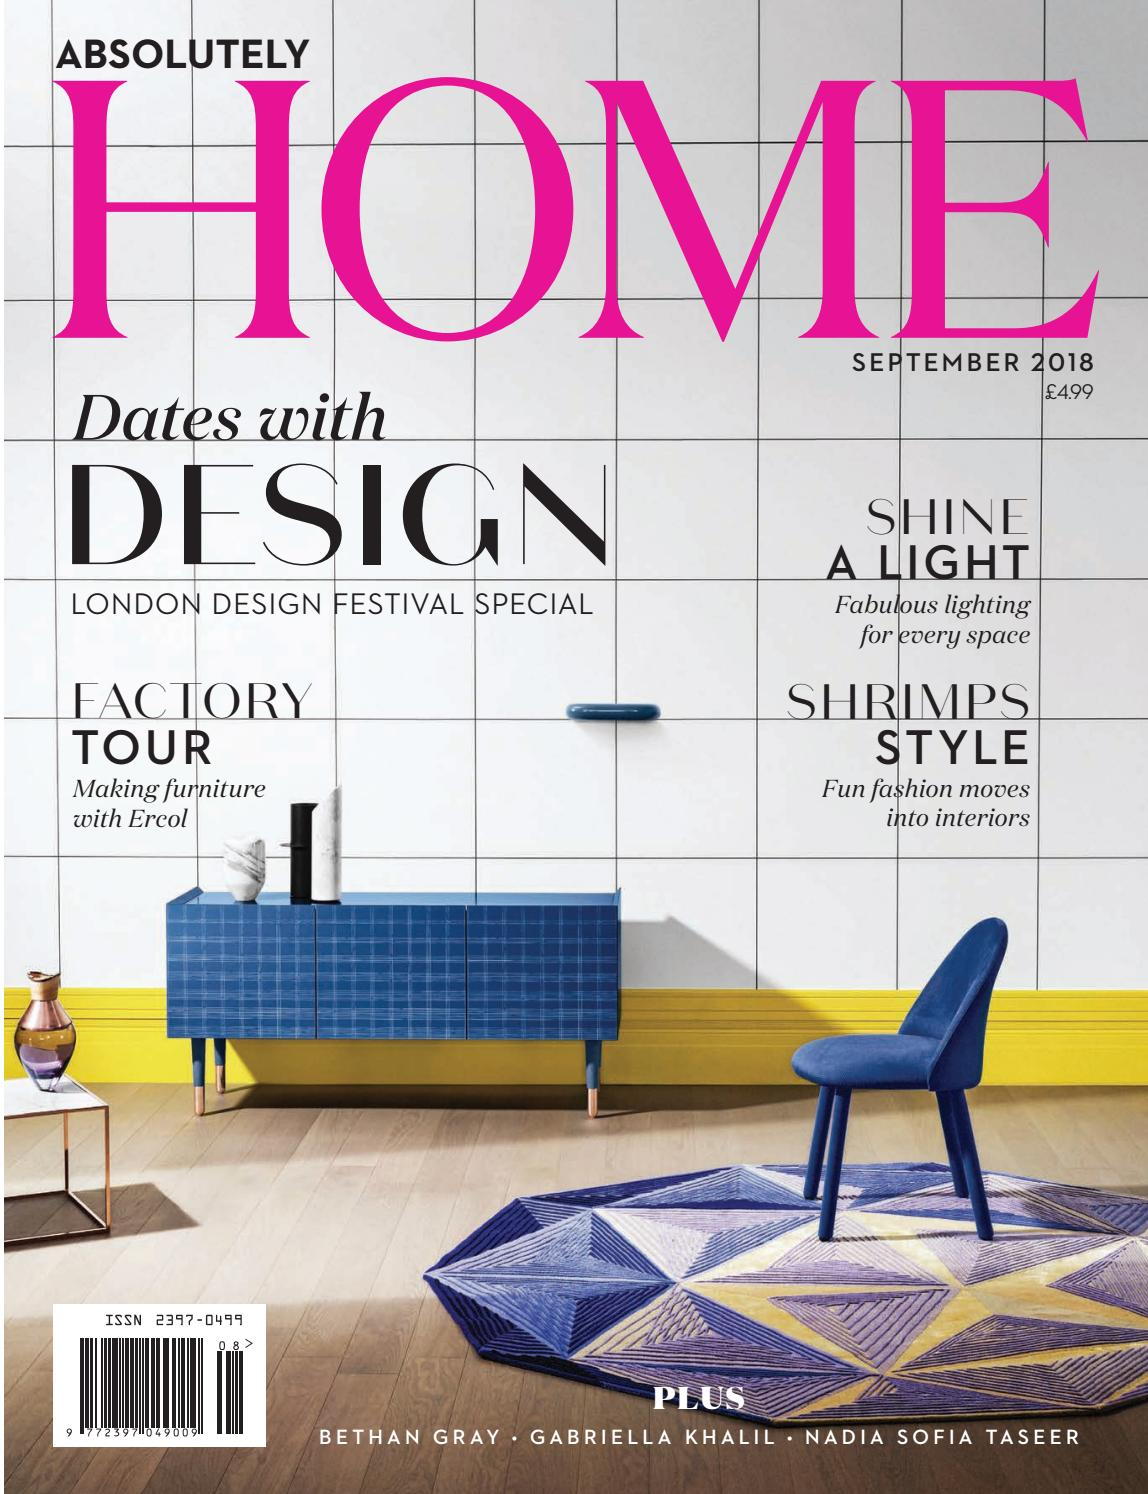 94ae594a4d25 Absolutely Home Magazine September 2018 by Zest Media London - issuu